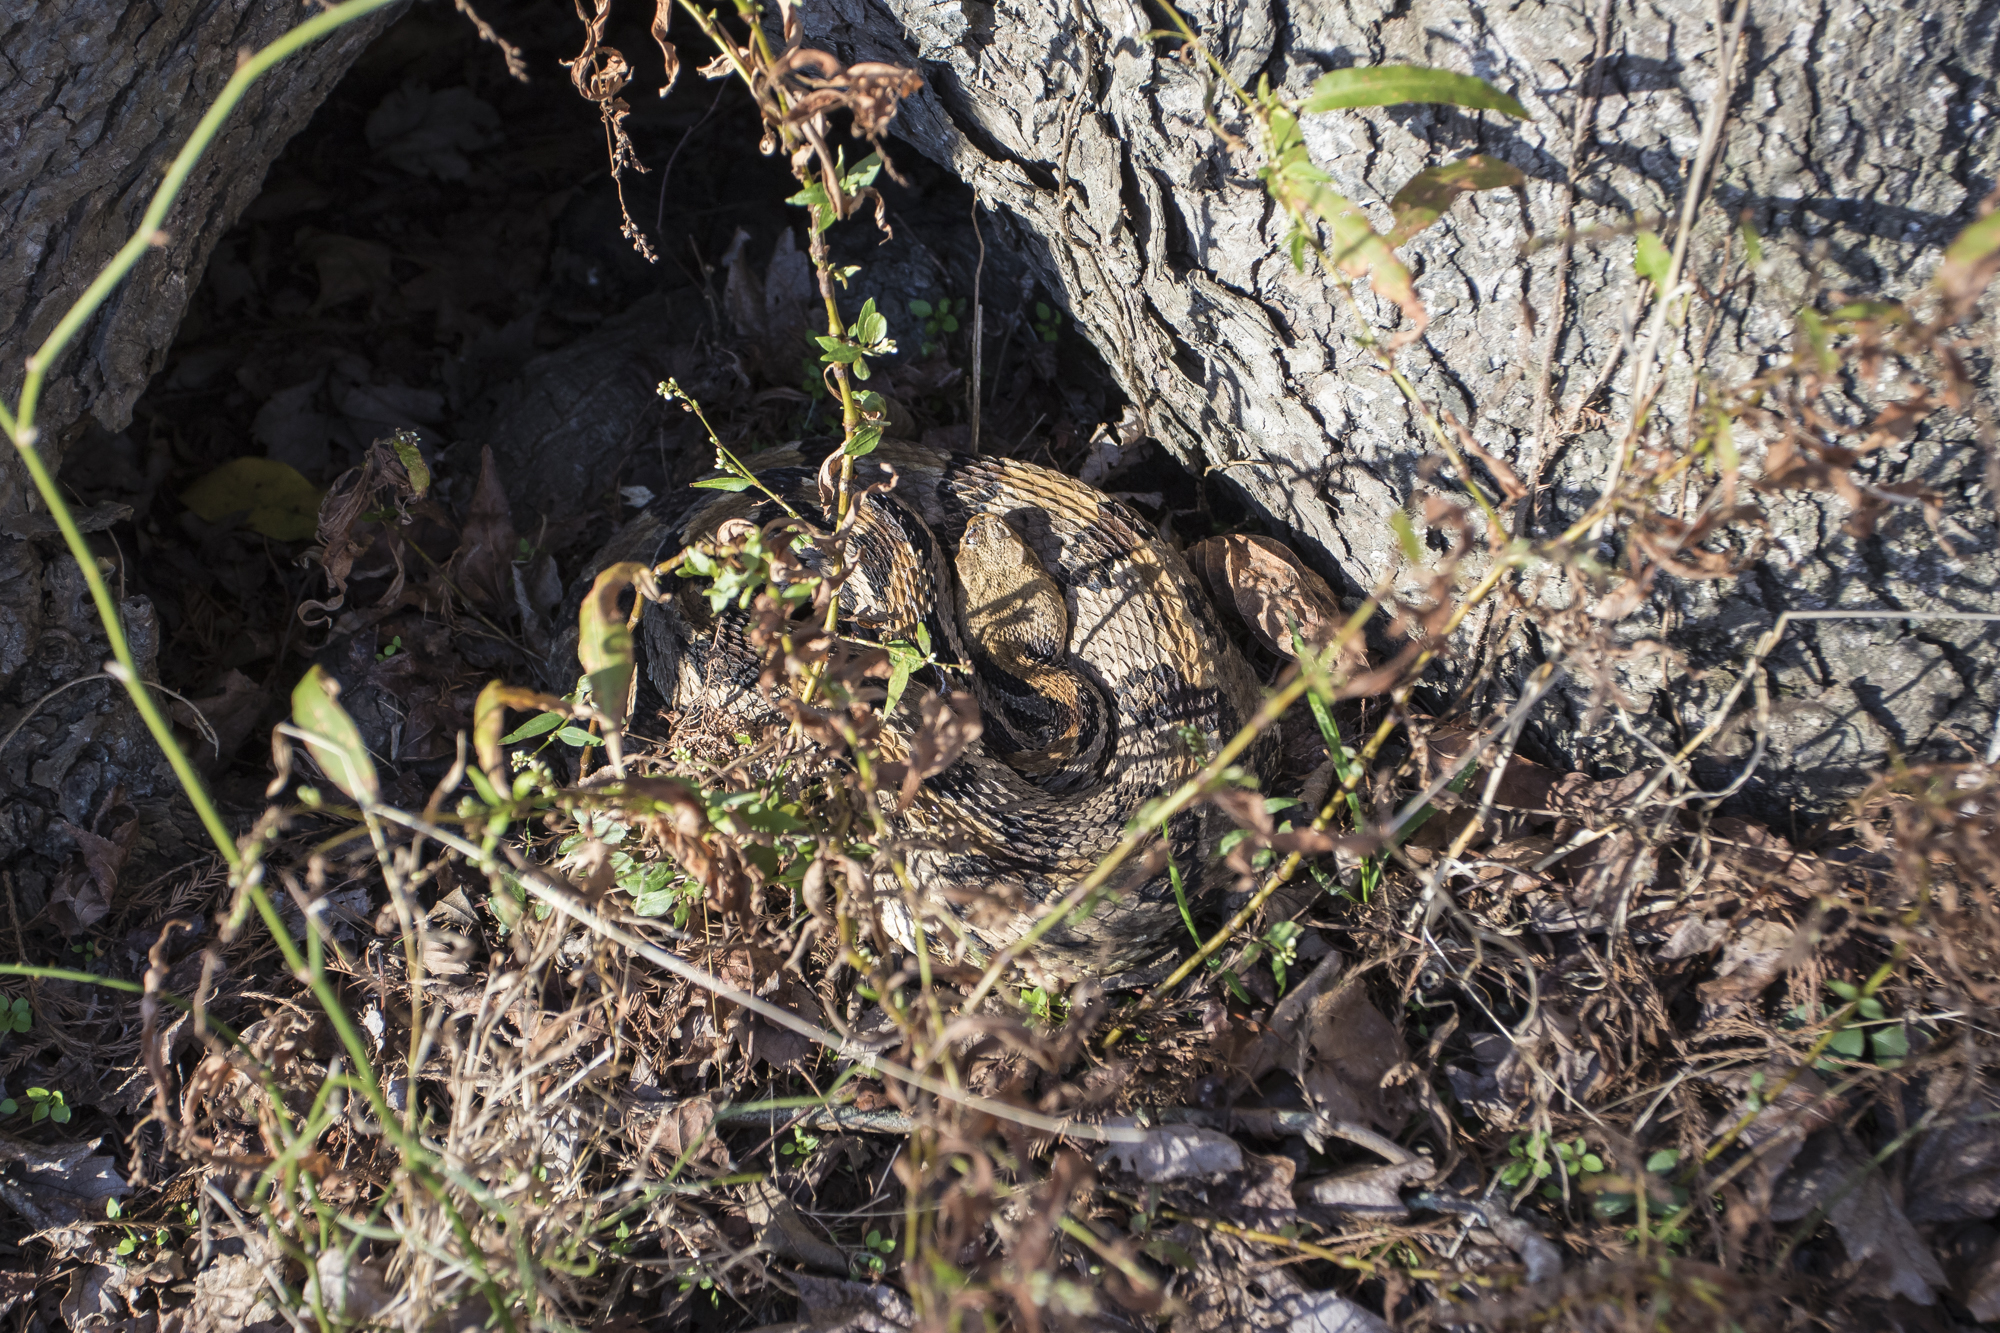 Canebrake rattlesnake at entrance to den tree